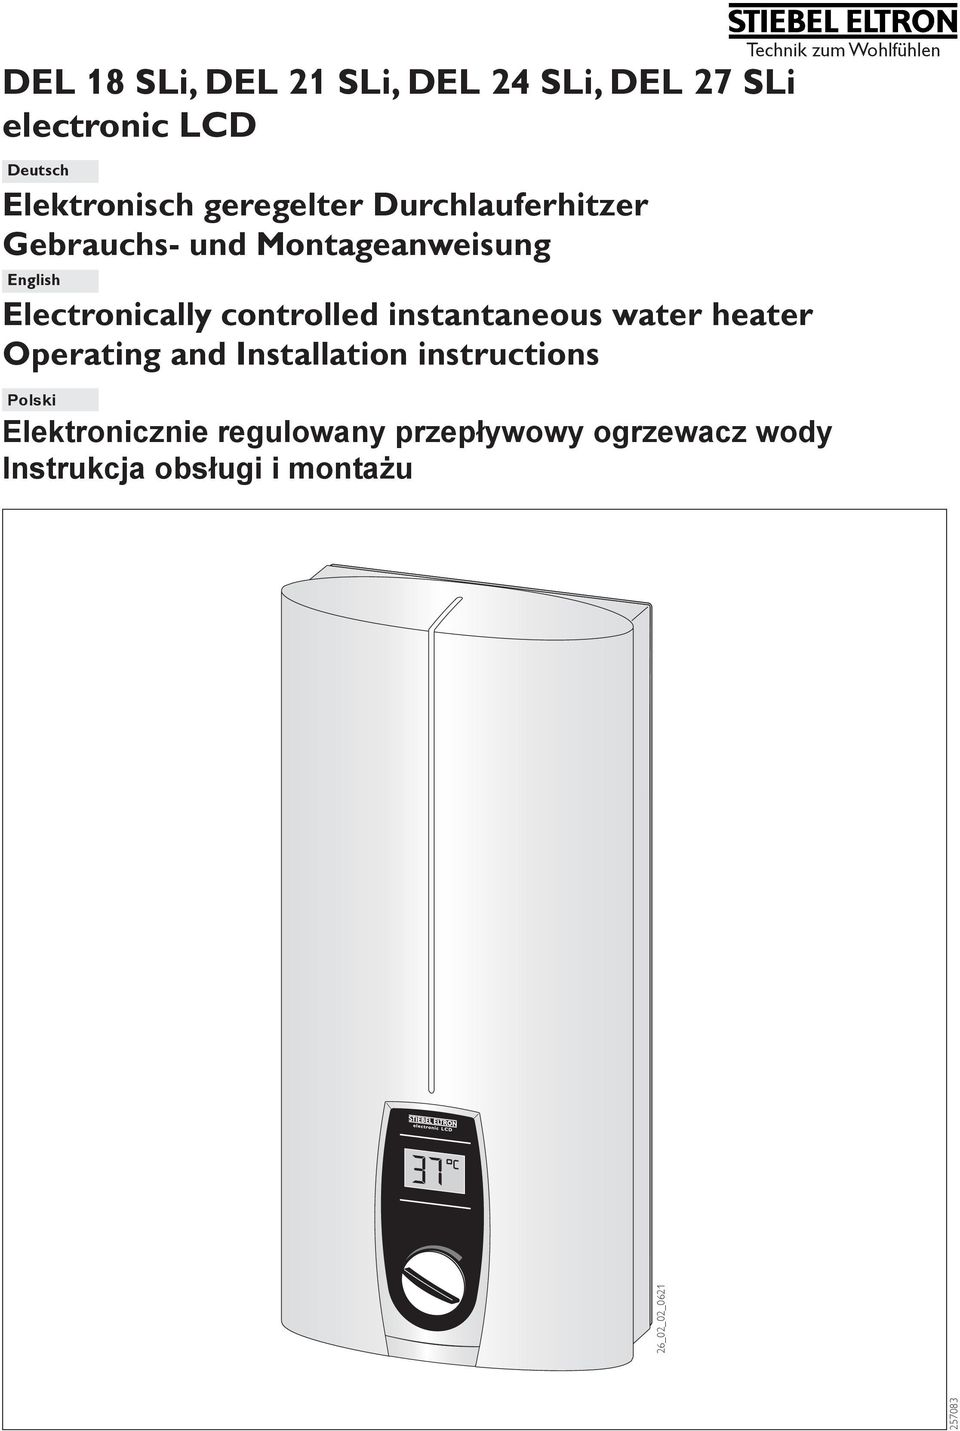 controlled instantaneous water heater Operating and Installation instructions Elektronicznie